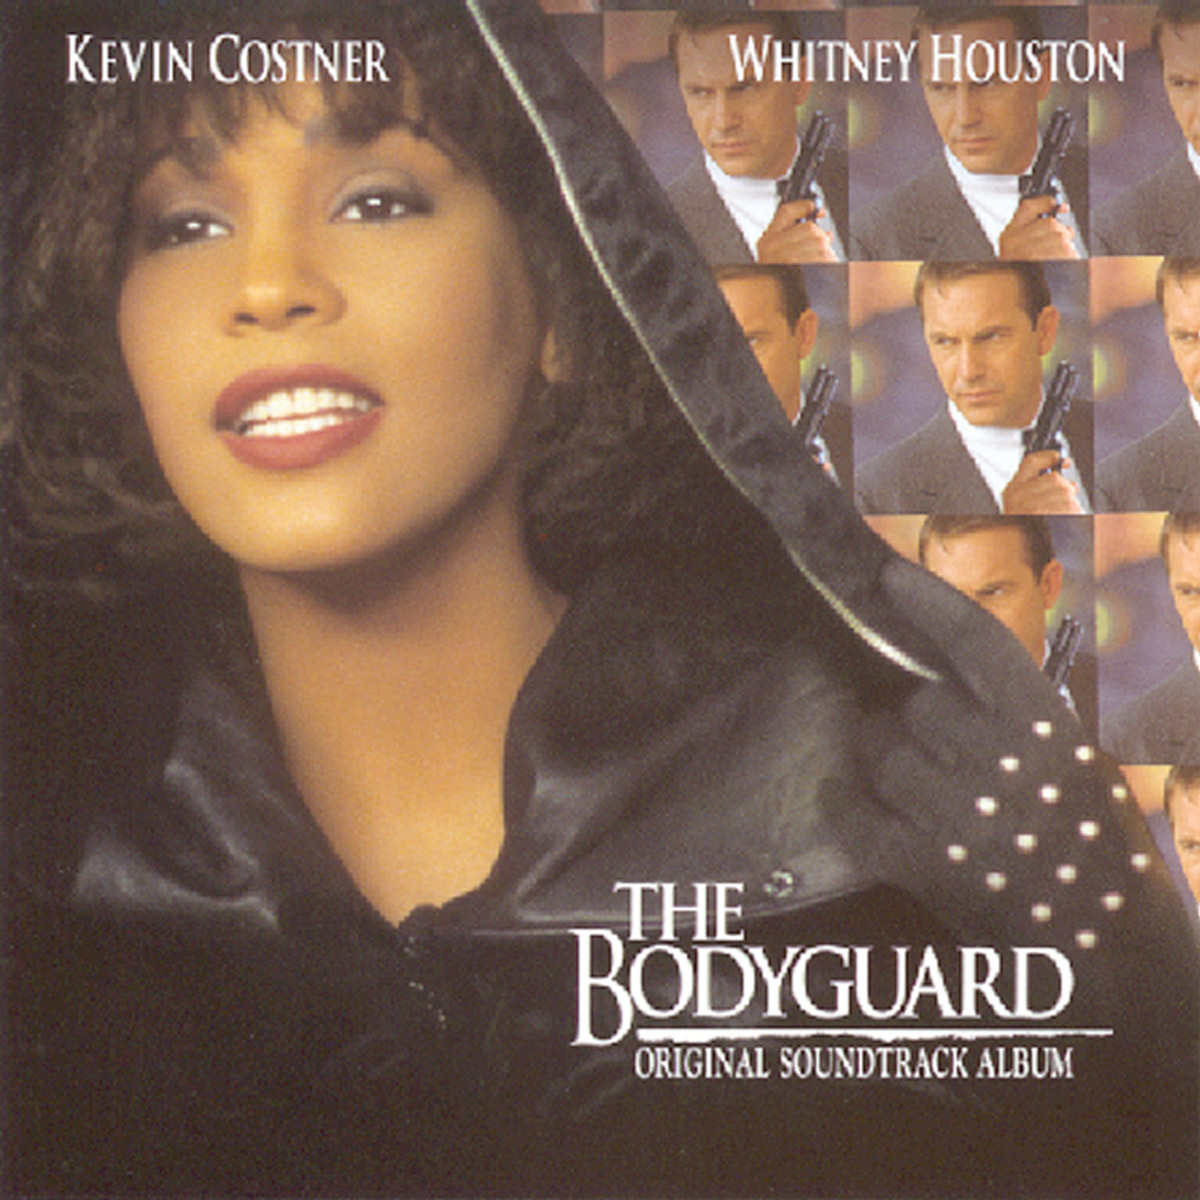 Whitney Houston - The Bodyguard: Original Soundtrack Album